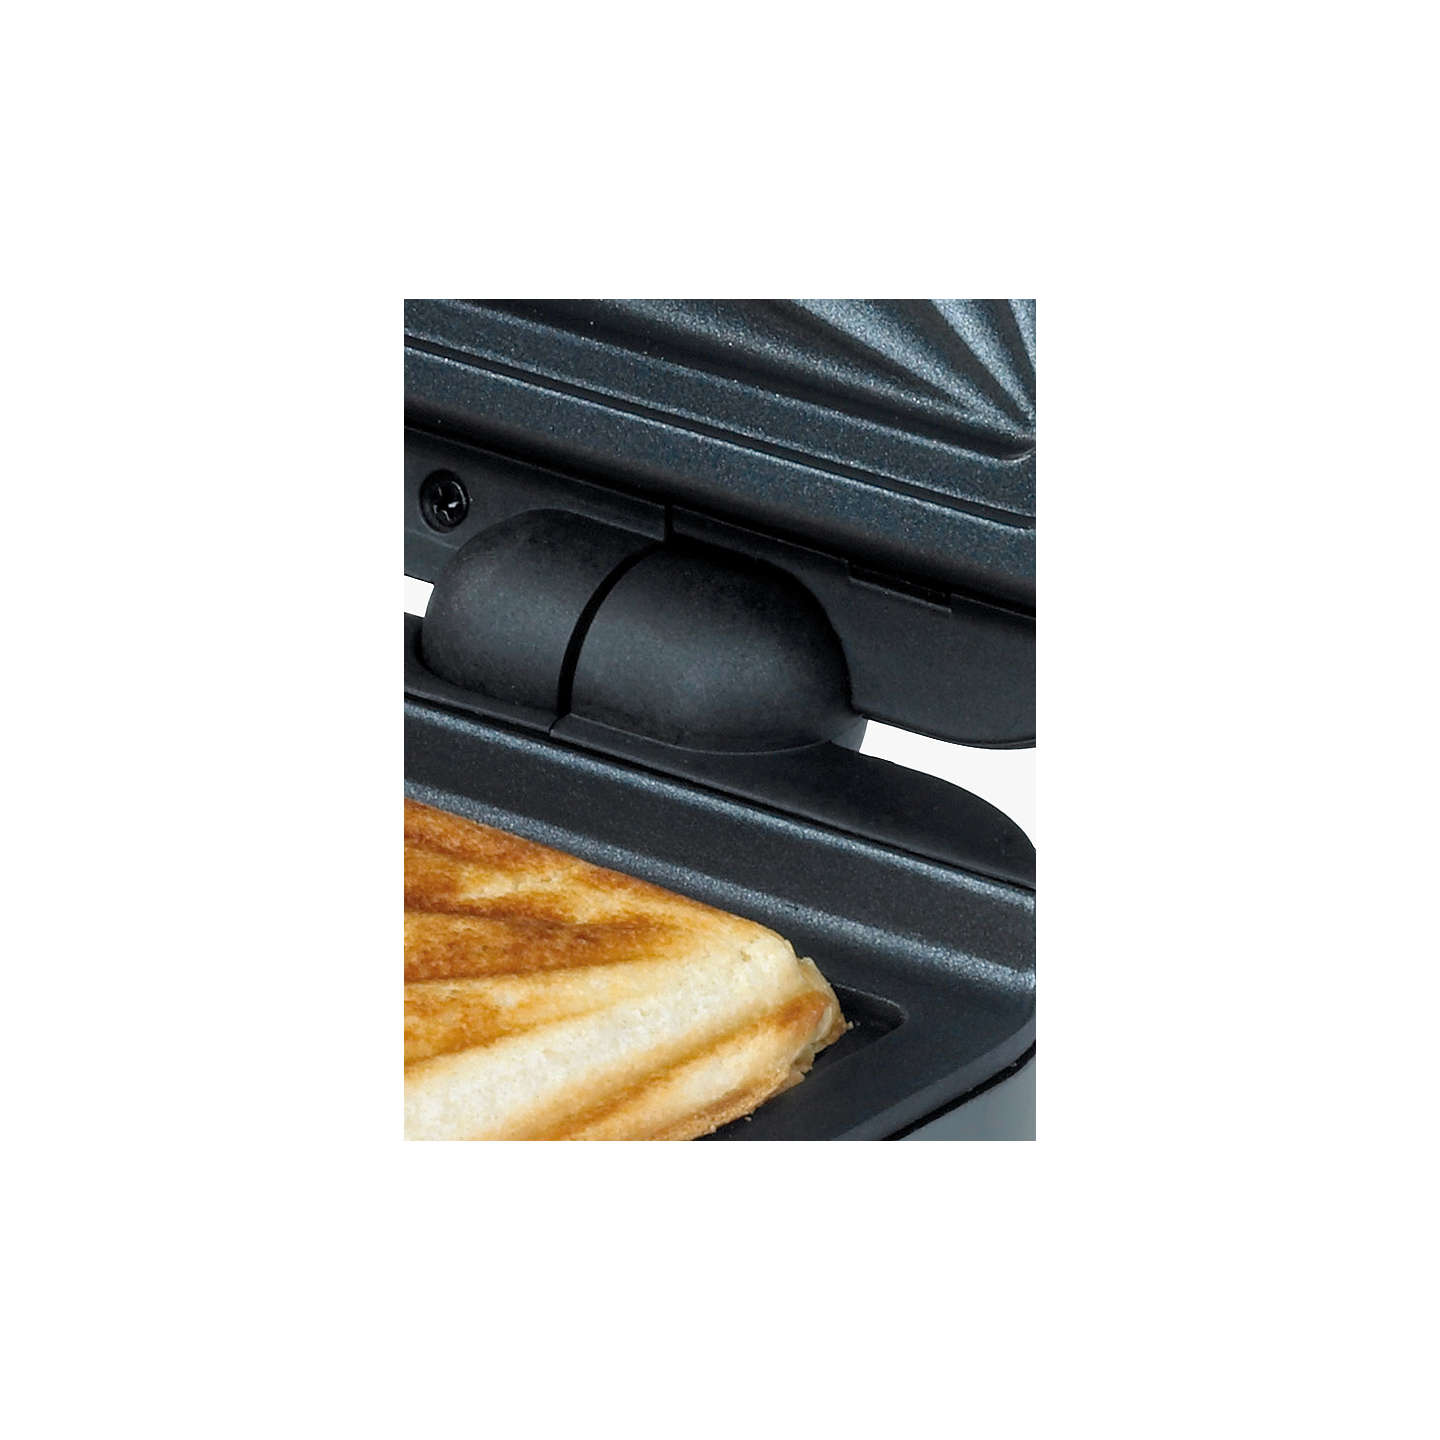 BuyBreville VST041 Deep Fill Sandwich Toaster Online at johnlewis.com